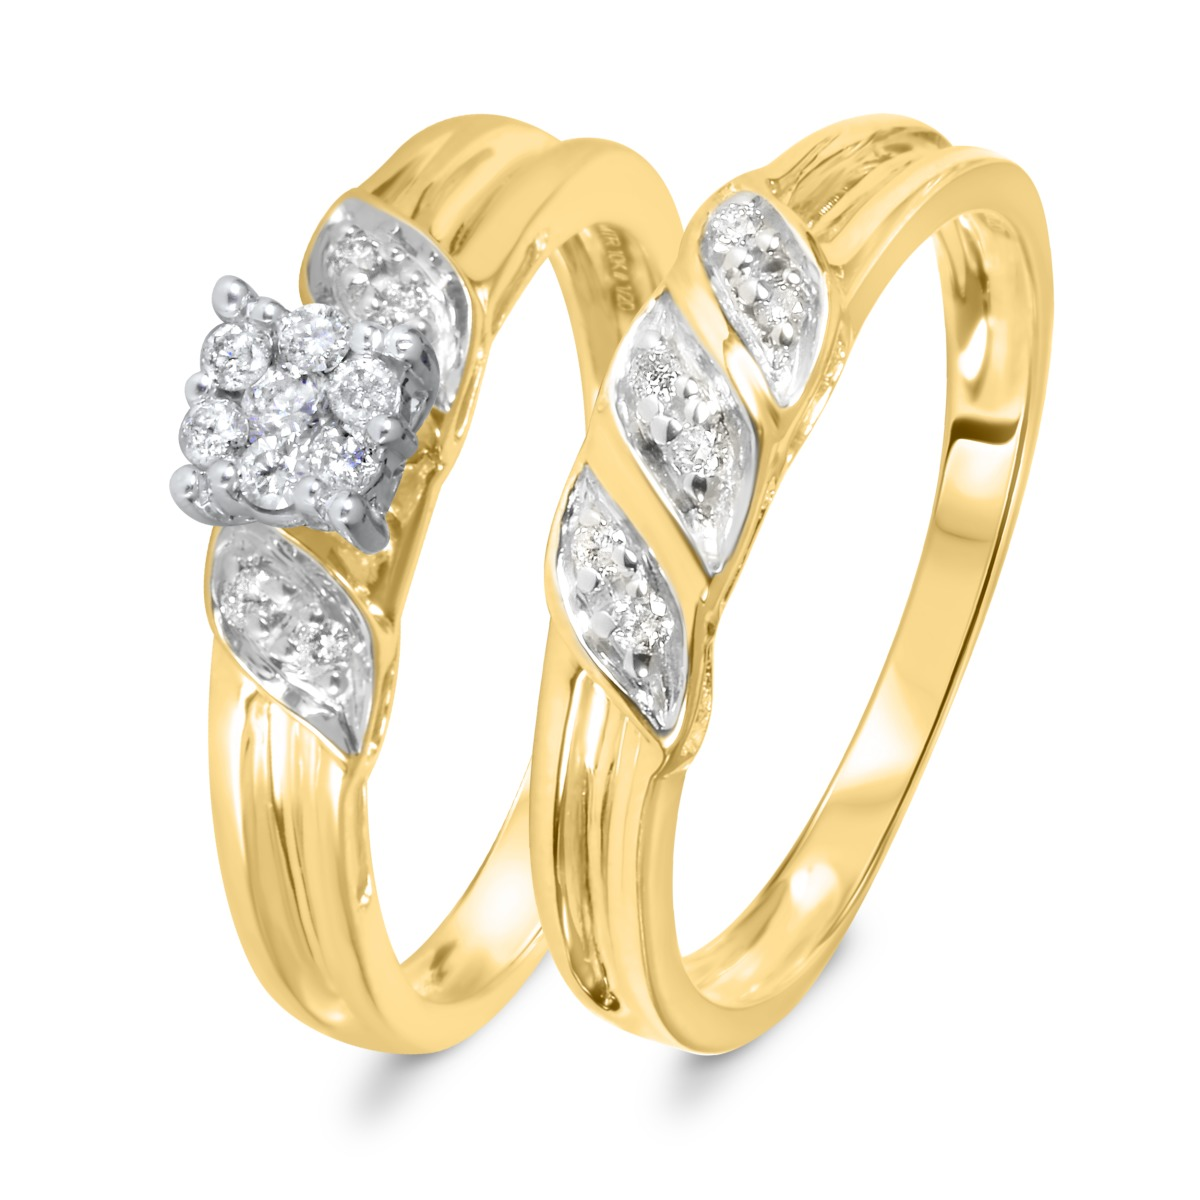 1/7 Carat Diamond Bridal Wedding Ring Set 10K Yellow Gold